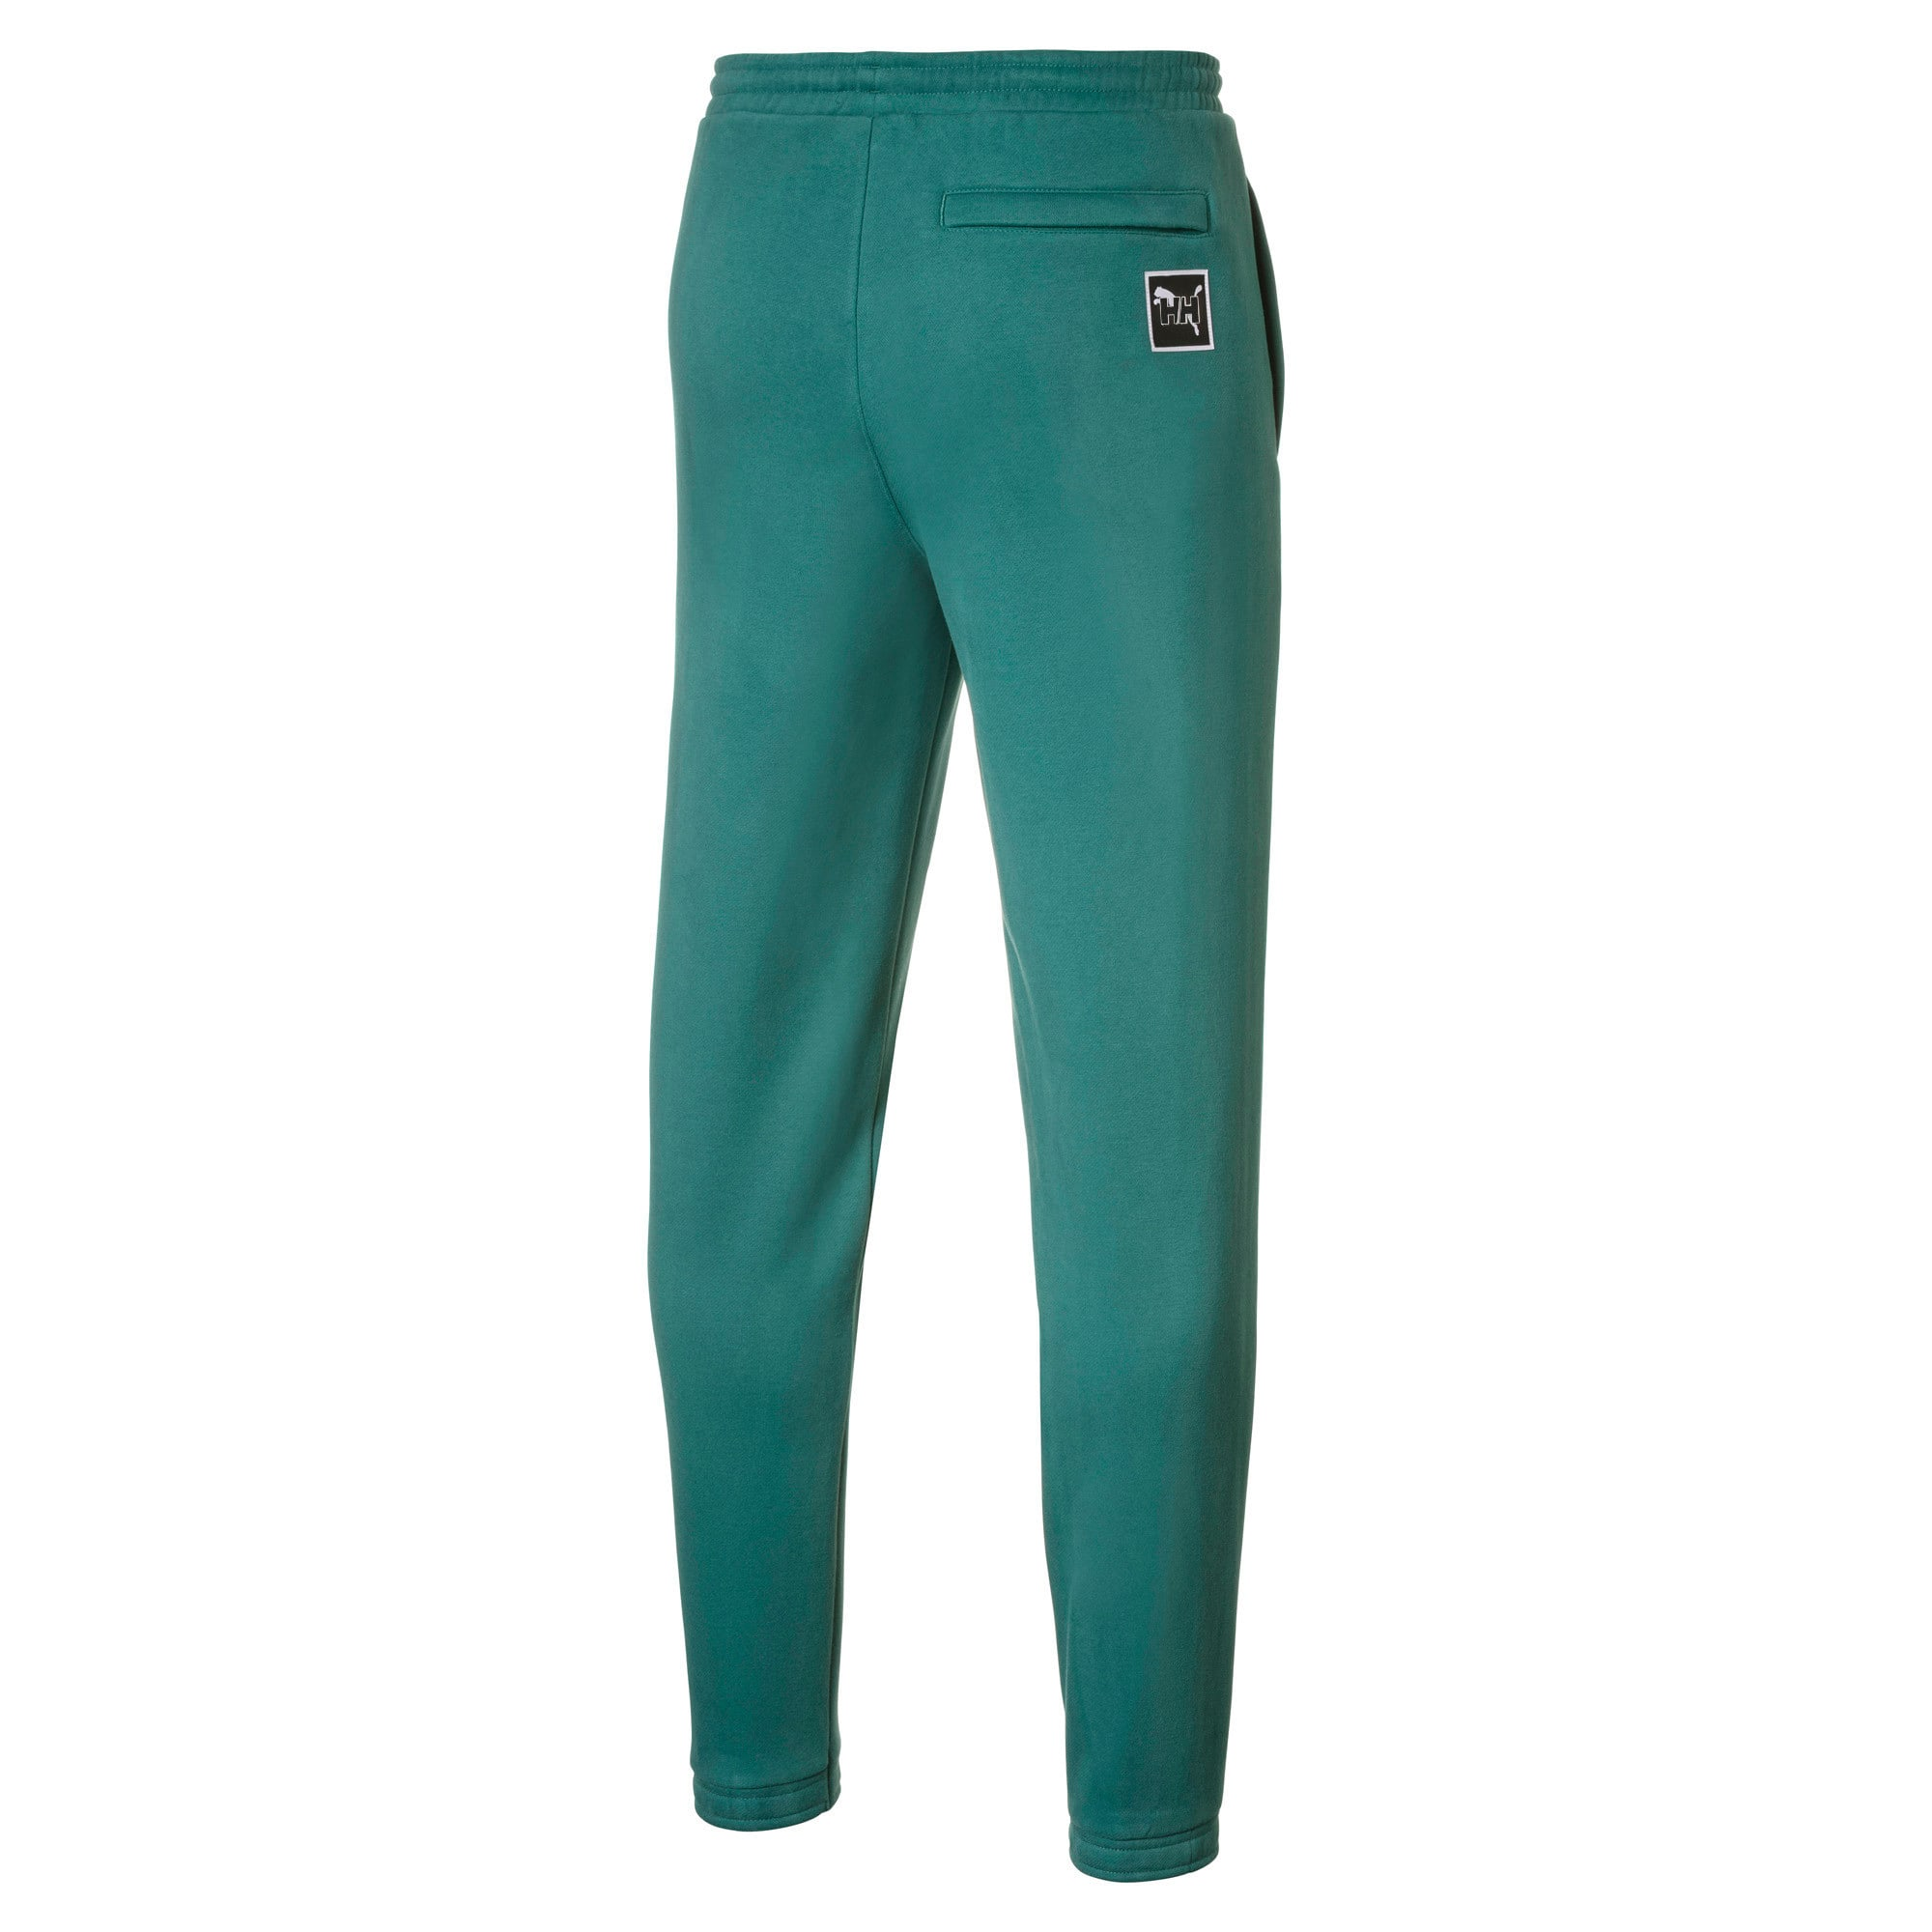 Thumbnail 2 of PUMA x HELLY HANSEN Fleece Trainingshose, Teal Green, medium